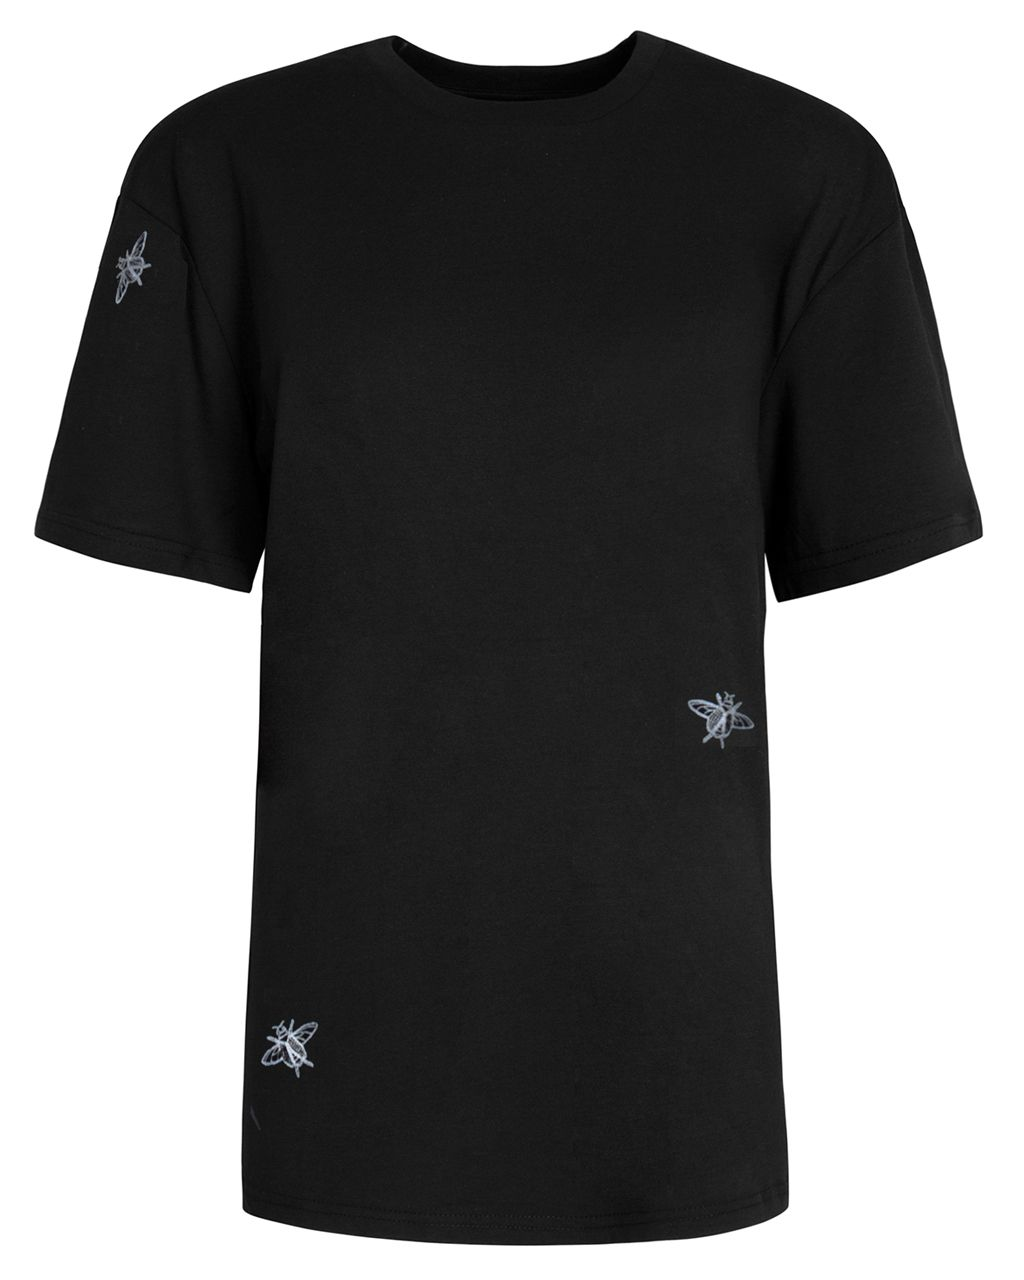 Bug Embroidered T-Shirt